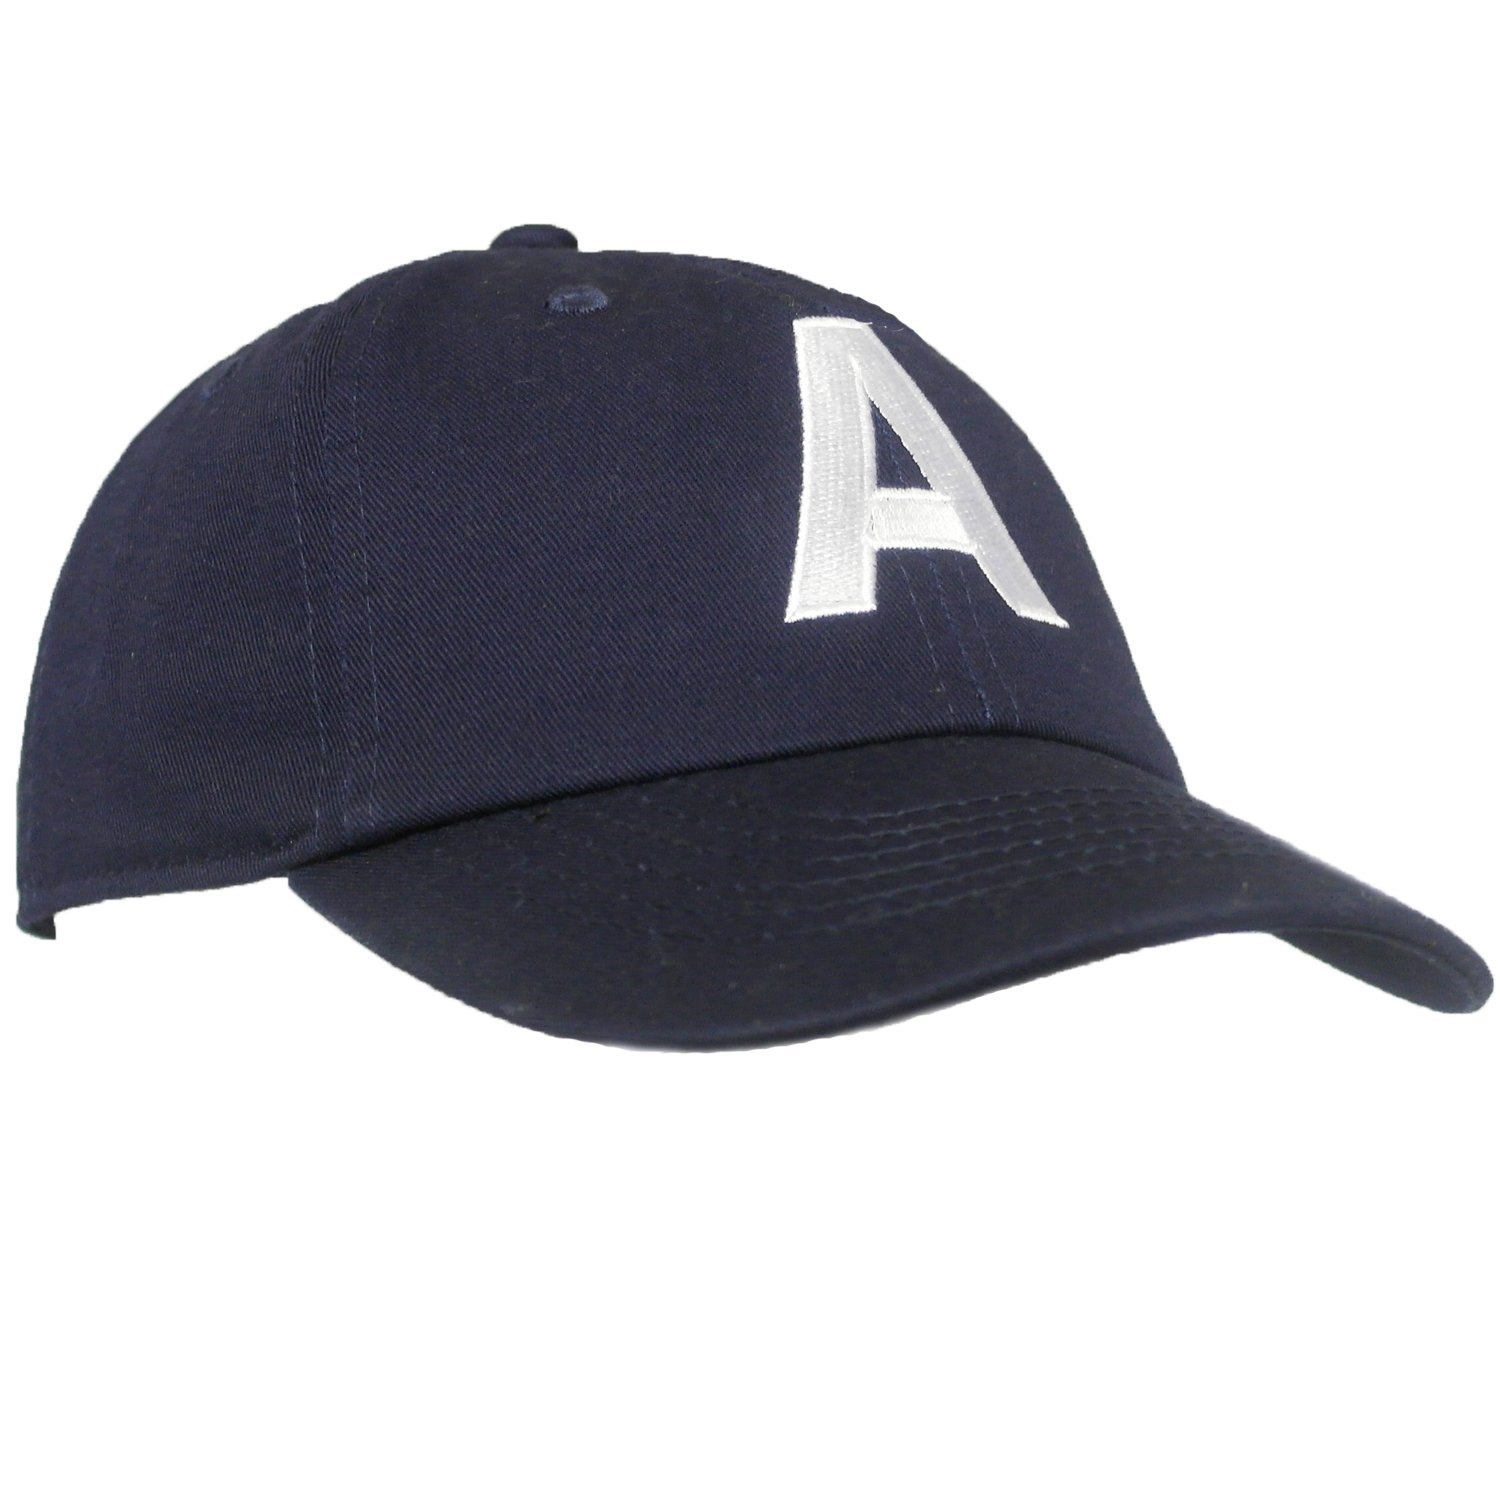 Tiny Expressions Toddler Boys' and Girls' Navy Embroidered Initial Baseball Hat Monogrammed Cap 2-6yrs)